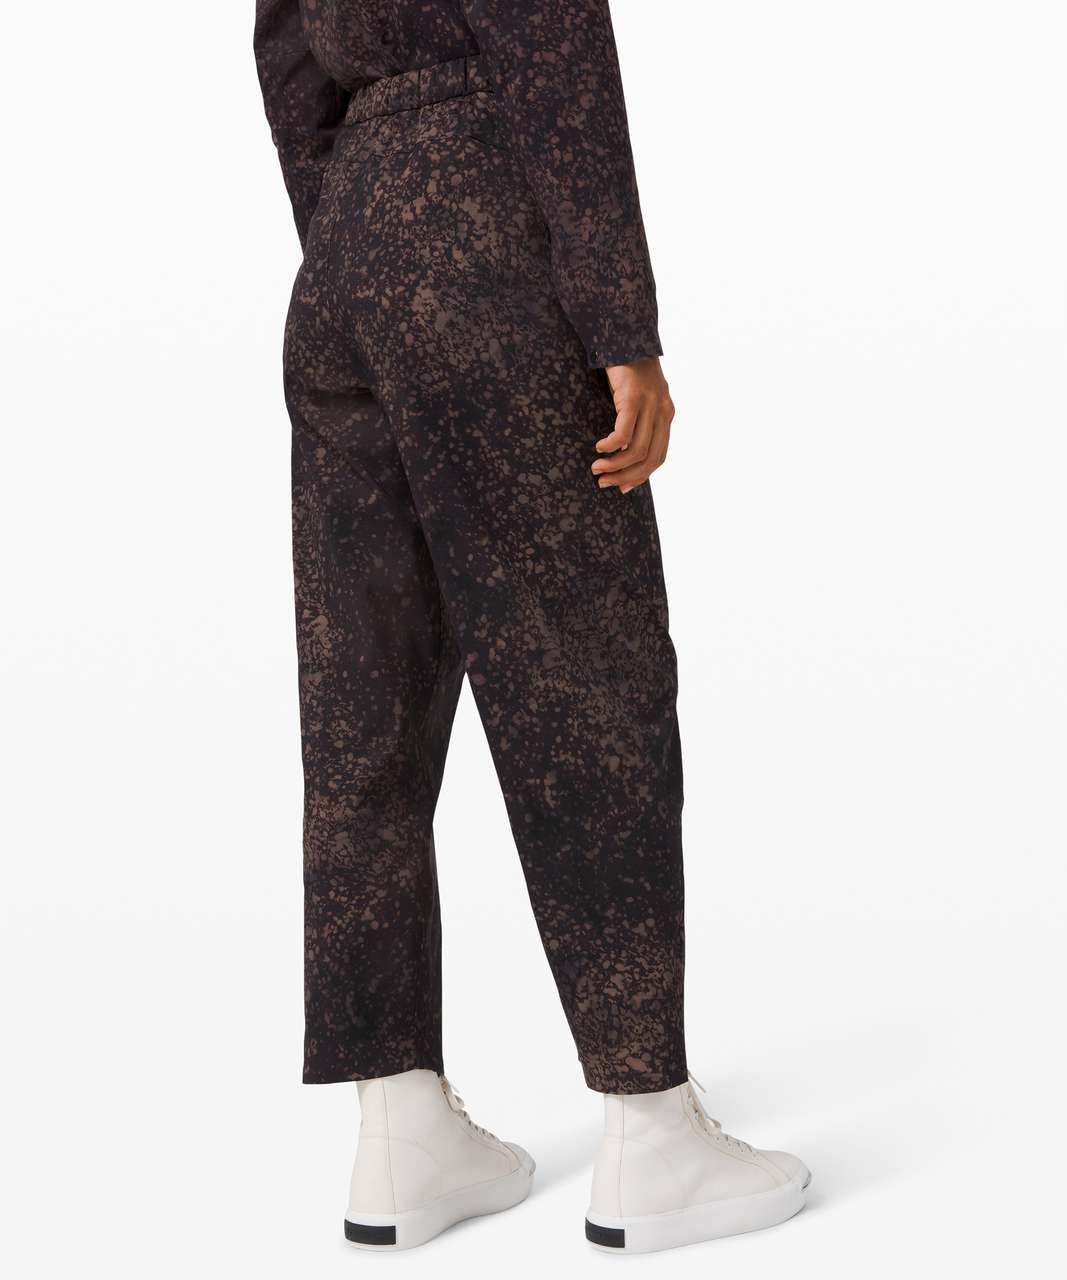 Lululemon Azal Jogger Print *lululemon lab - Planet Surface Ashen Rose Multi